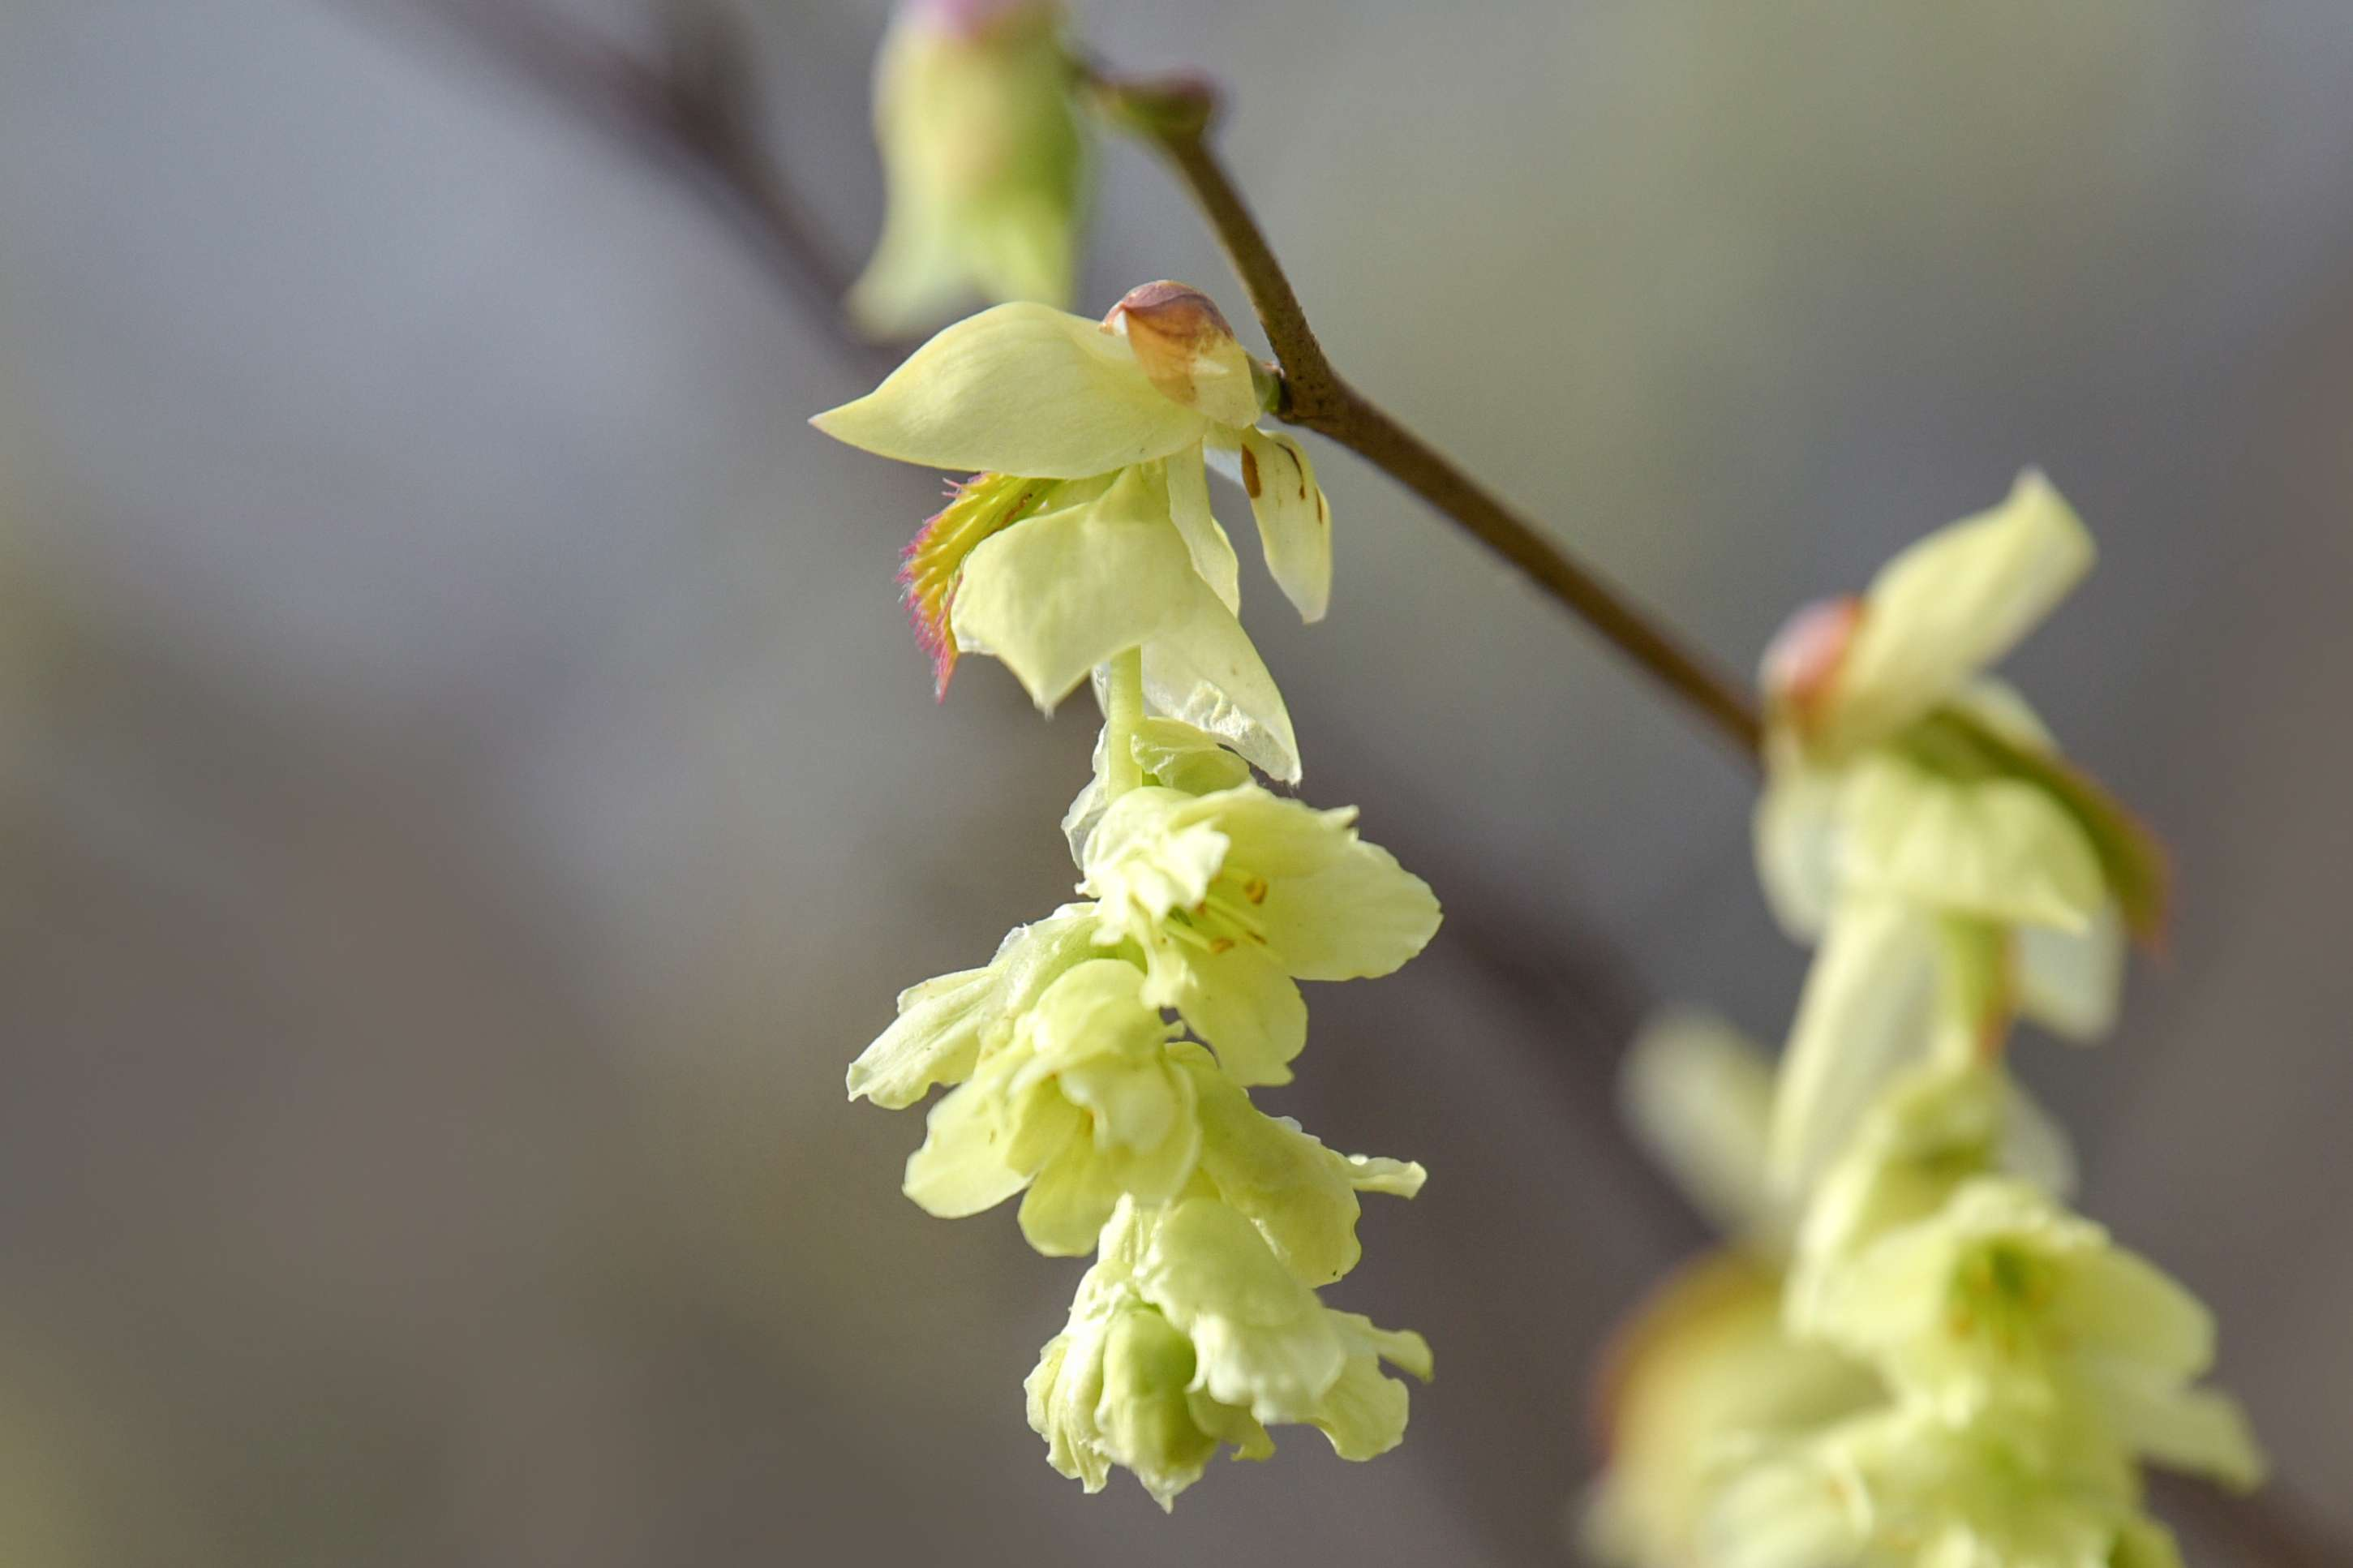 Buttercup winter hazel flowers with pale yellow petals hanging off branches closeup